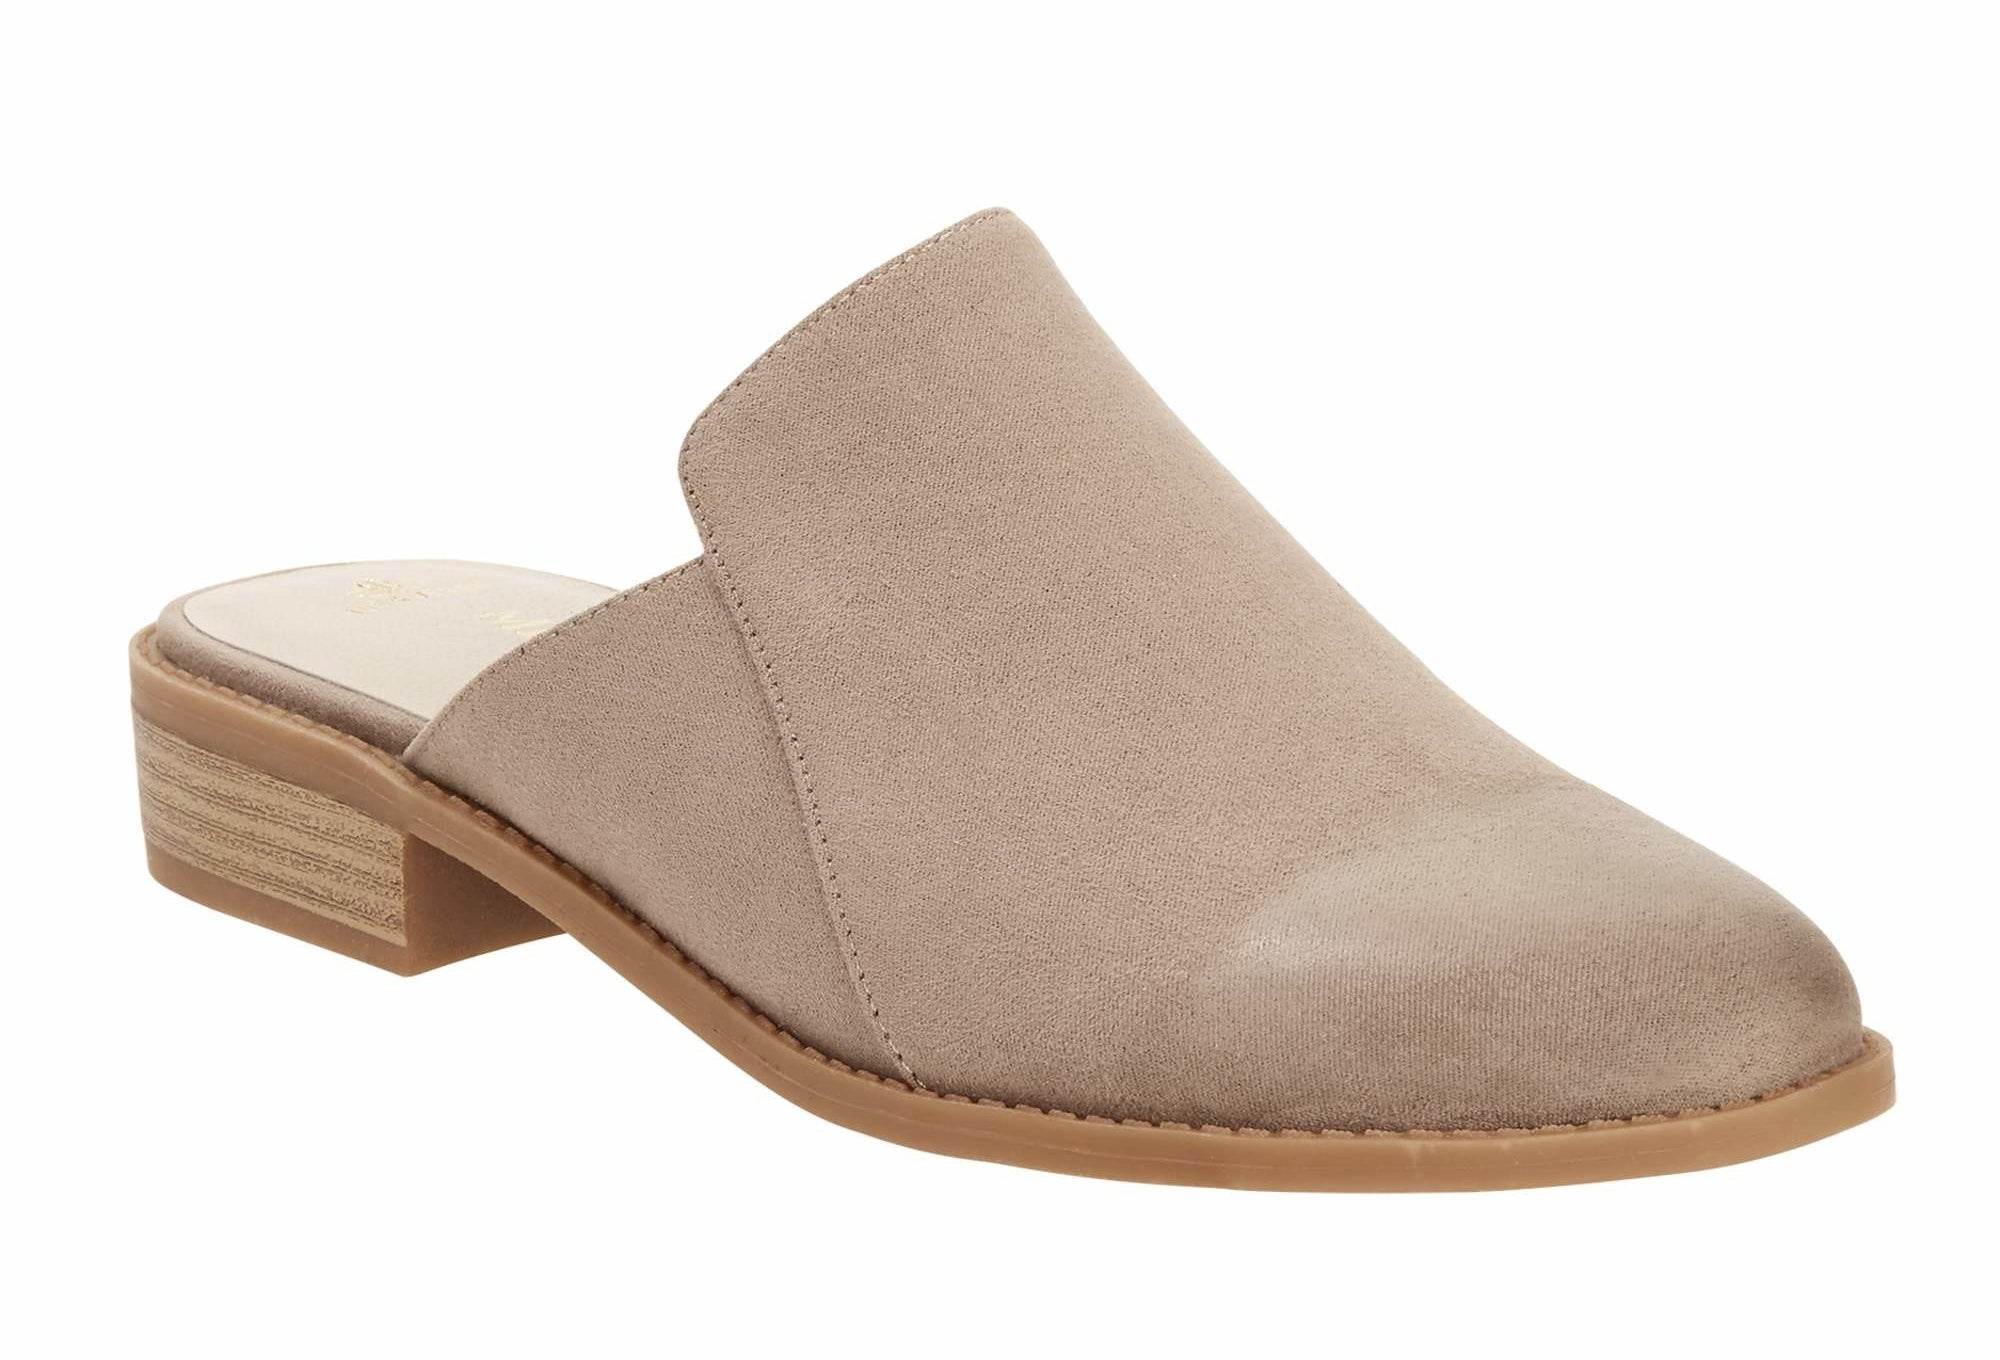 The vegan suede mule in taupe